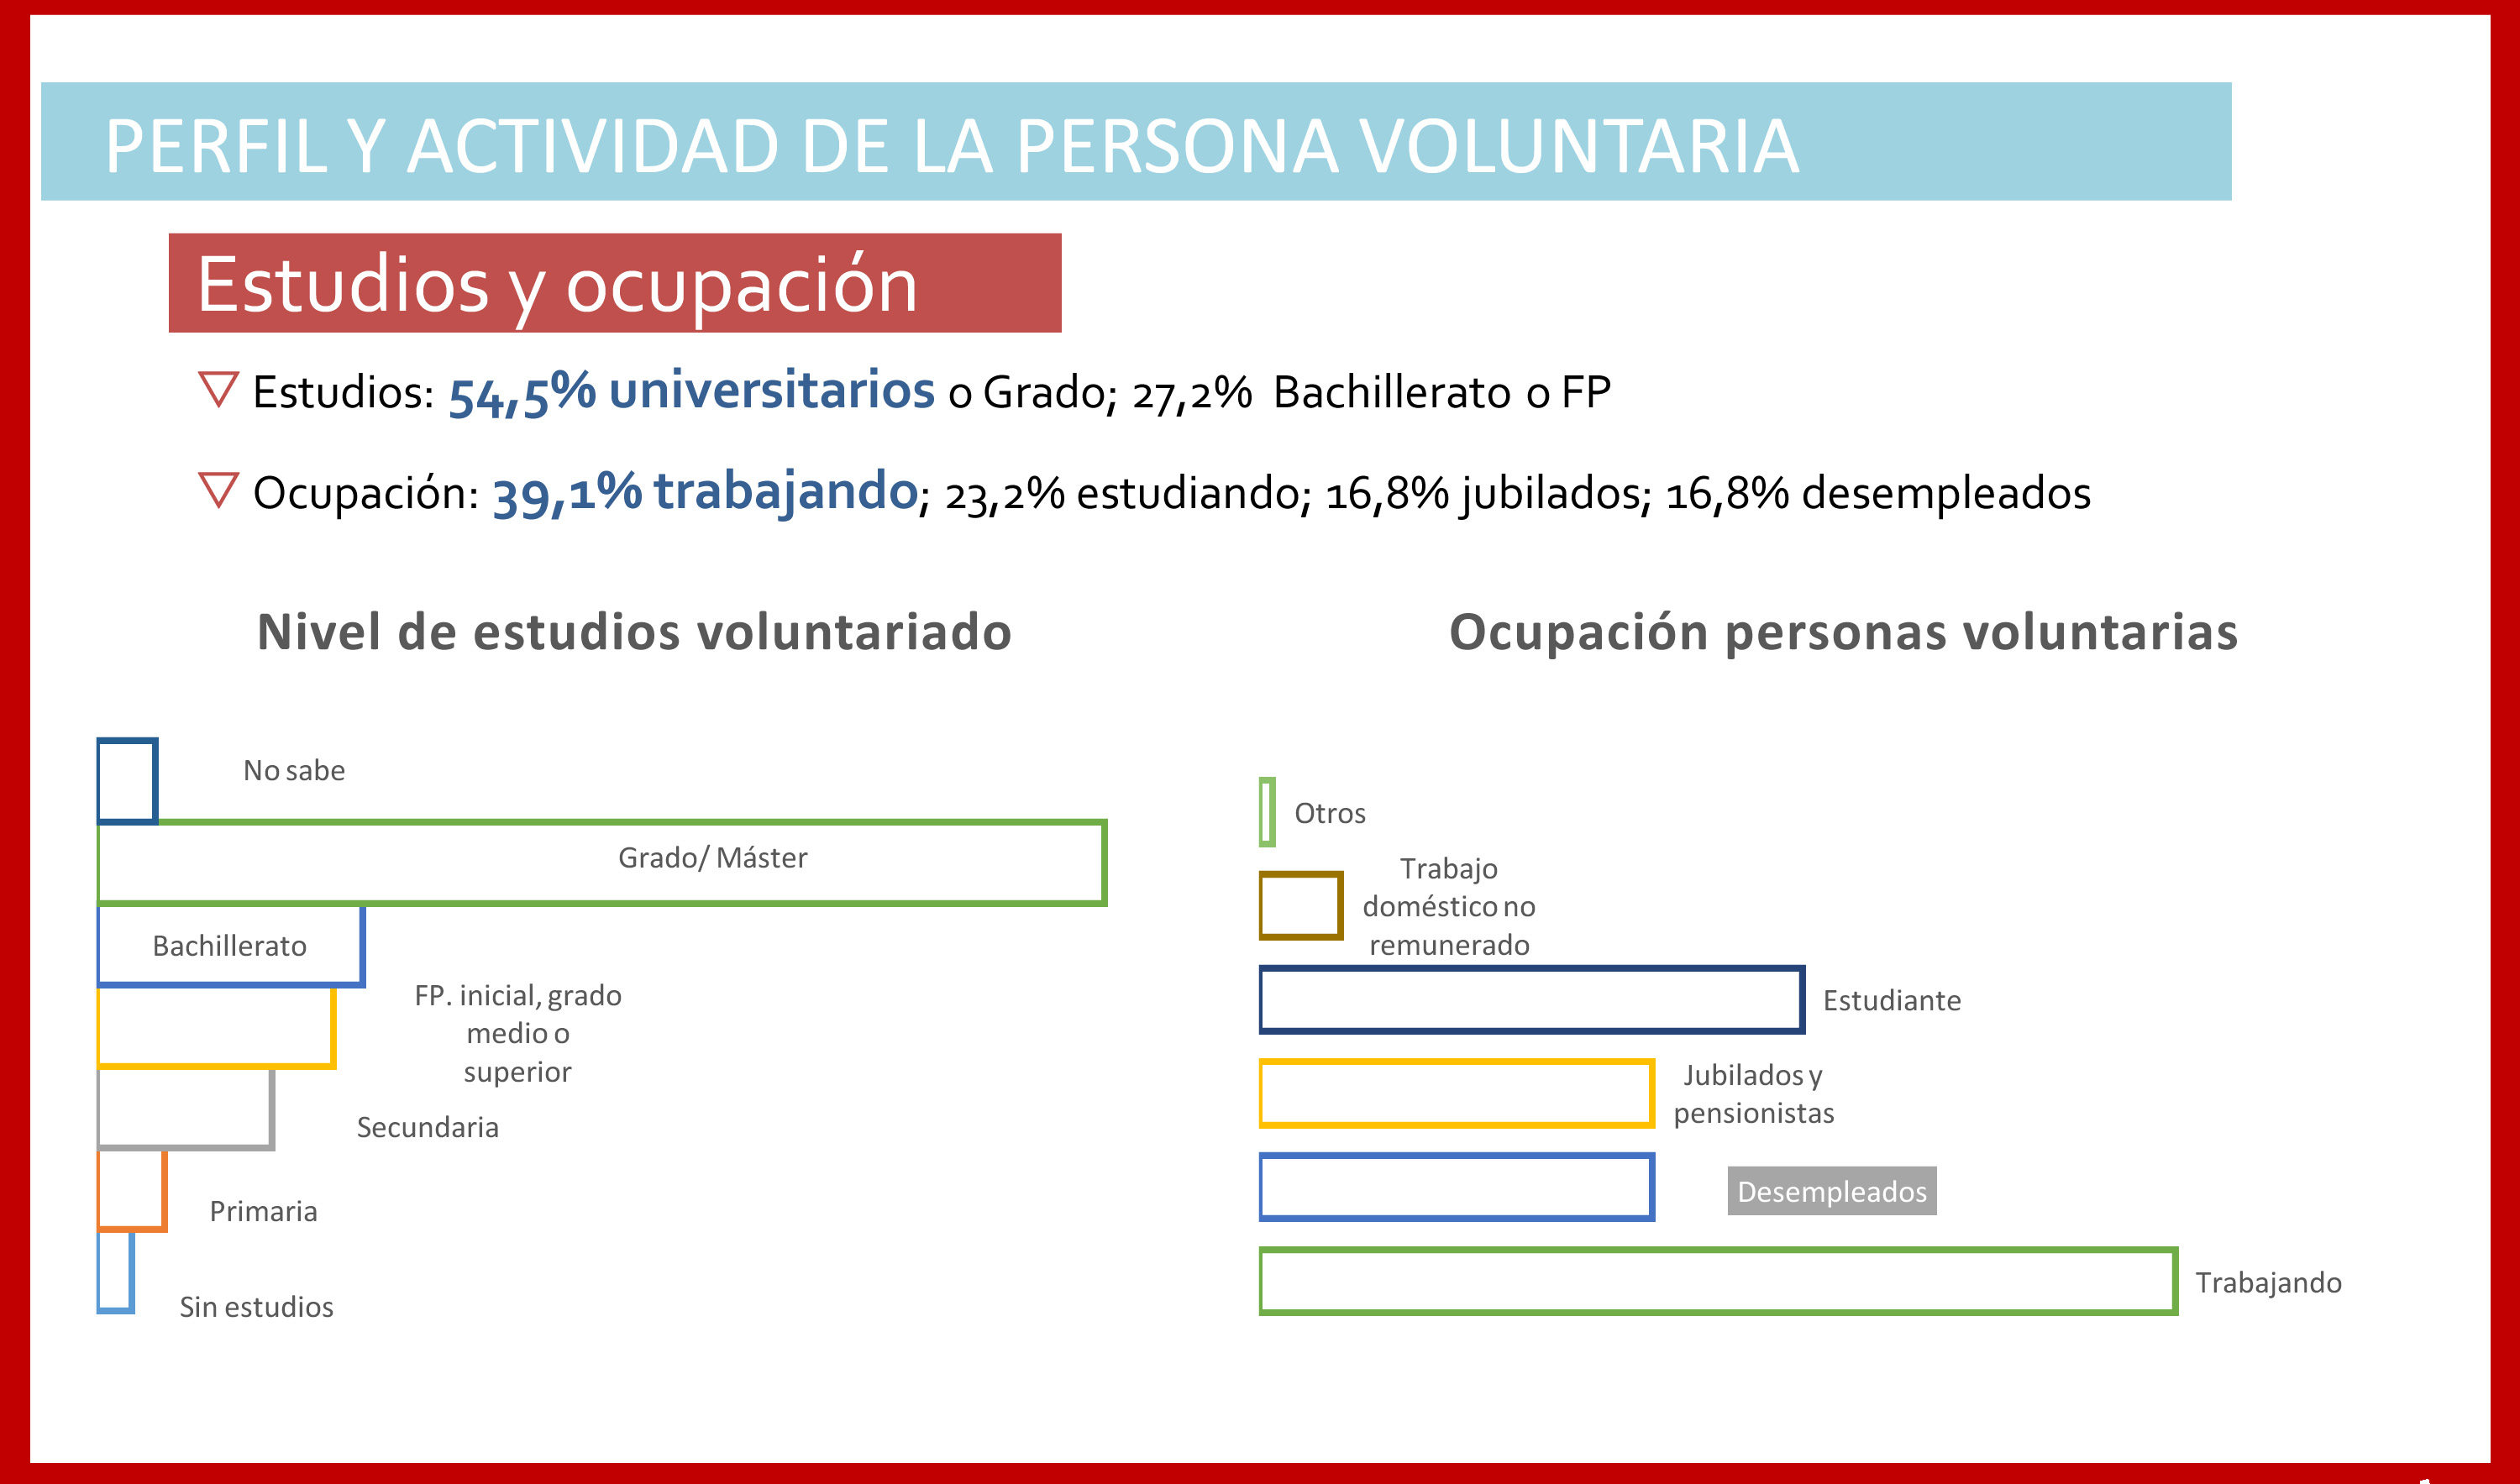 perfil_voluntariado_madrid_persona voluntaria ocupacion